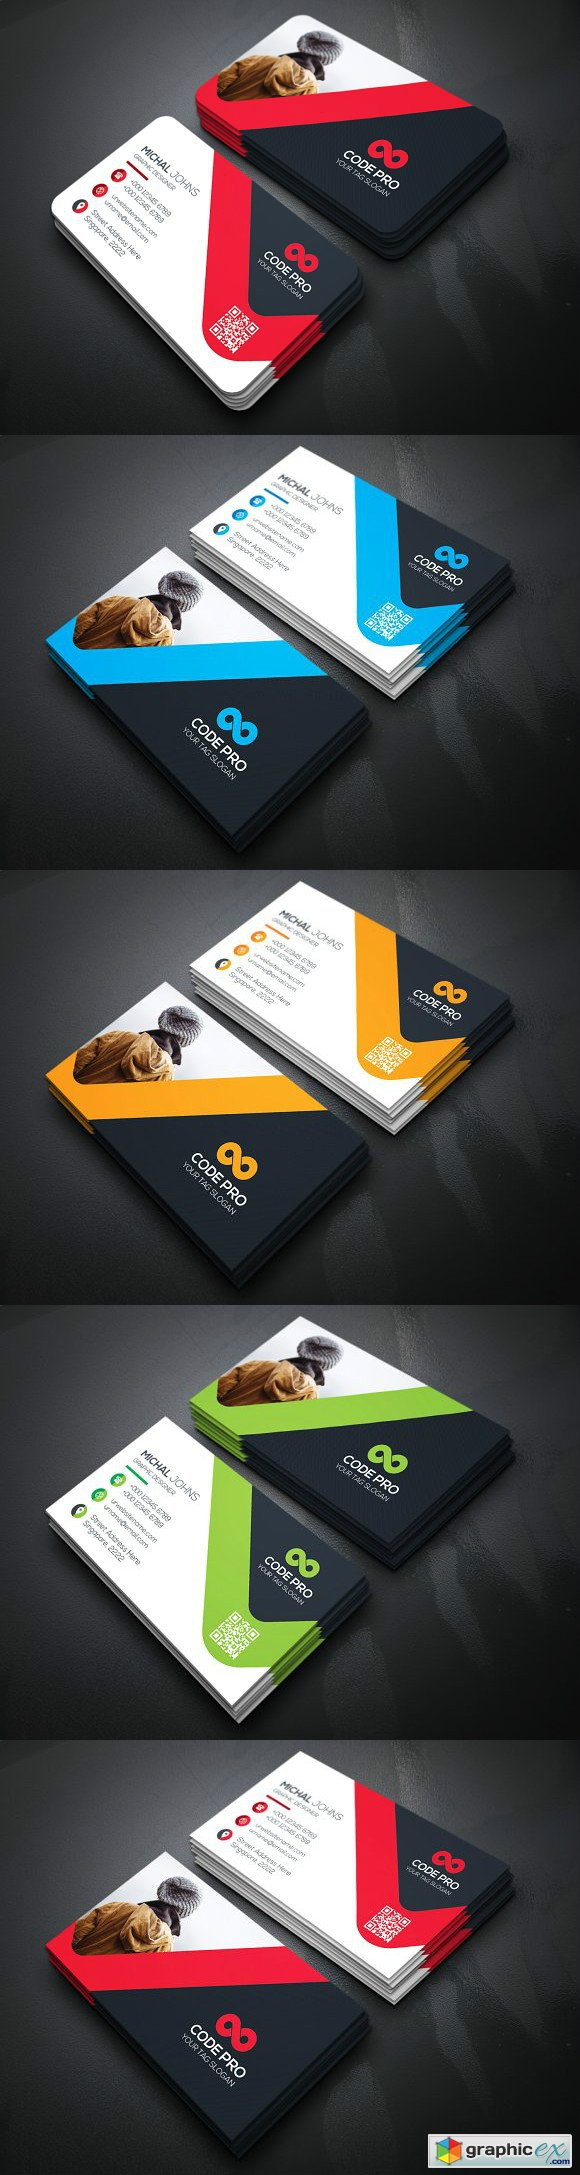 Personal Business Card 1311732